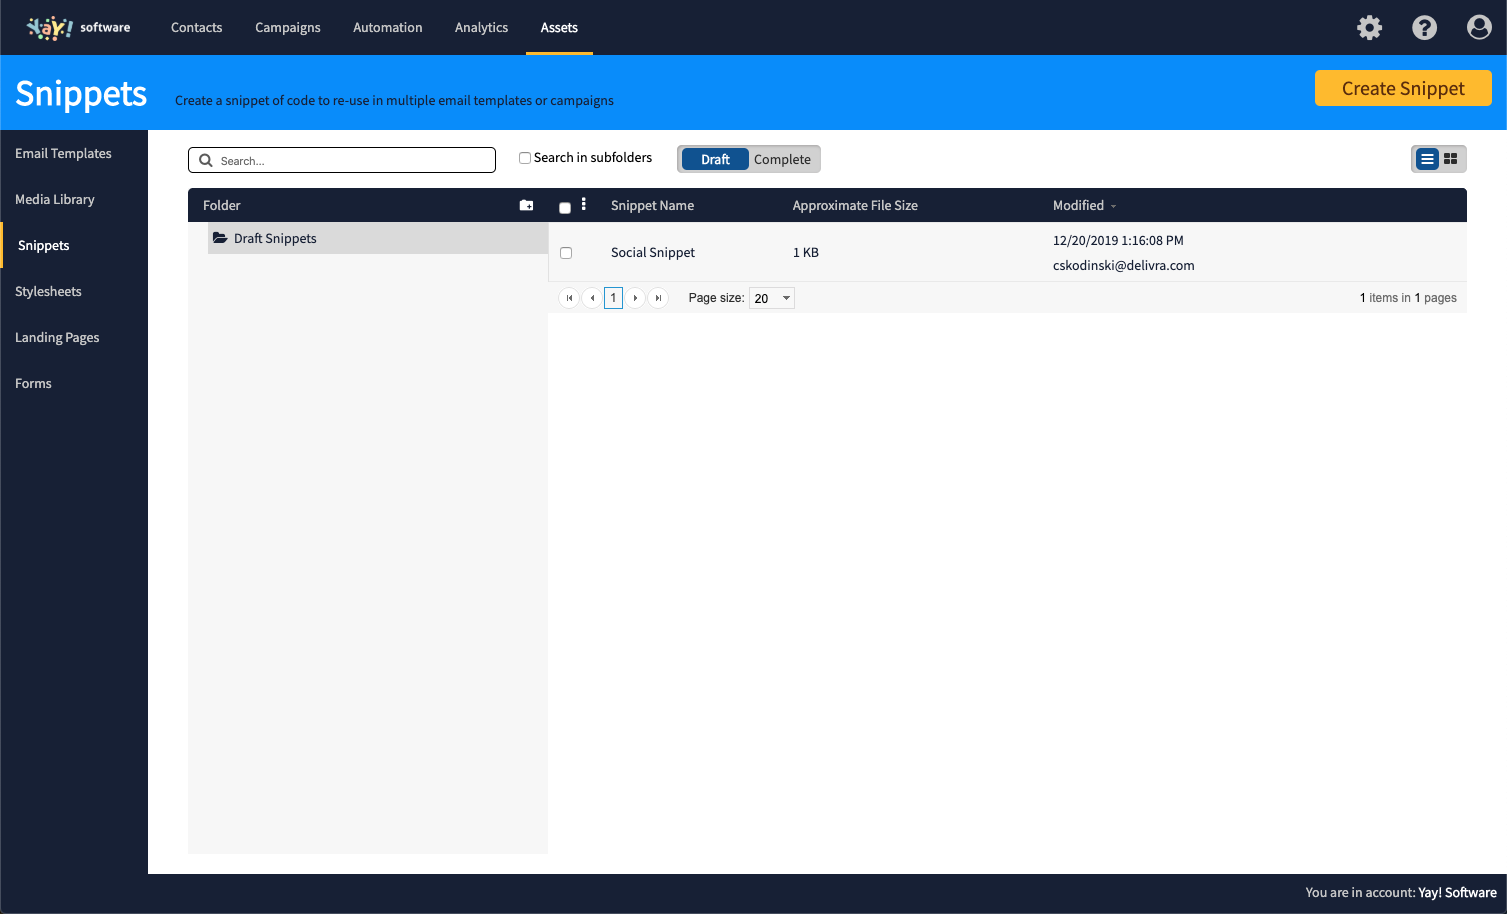 Here's what your Snippets page will look like.